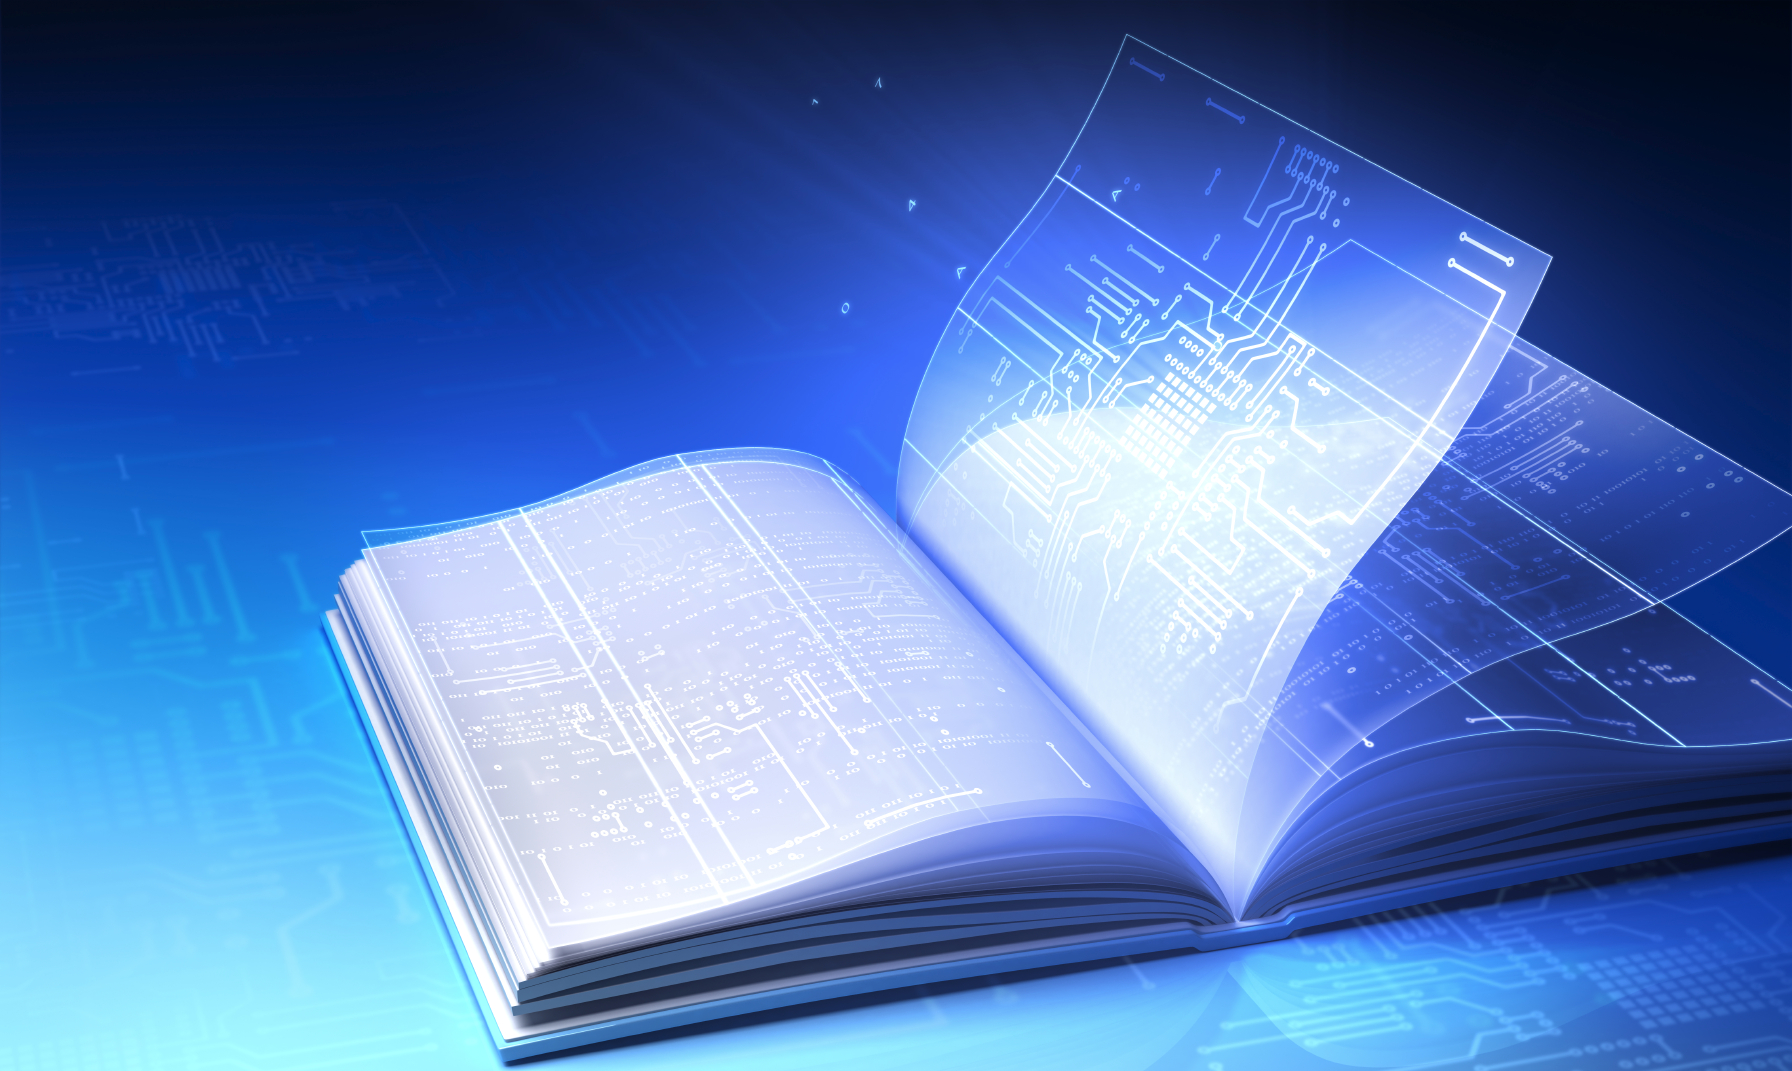 An image of a book that has digital information